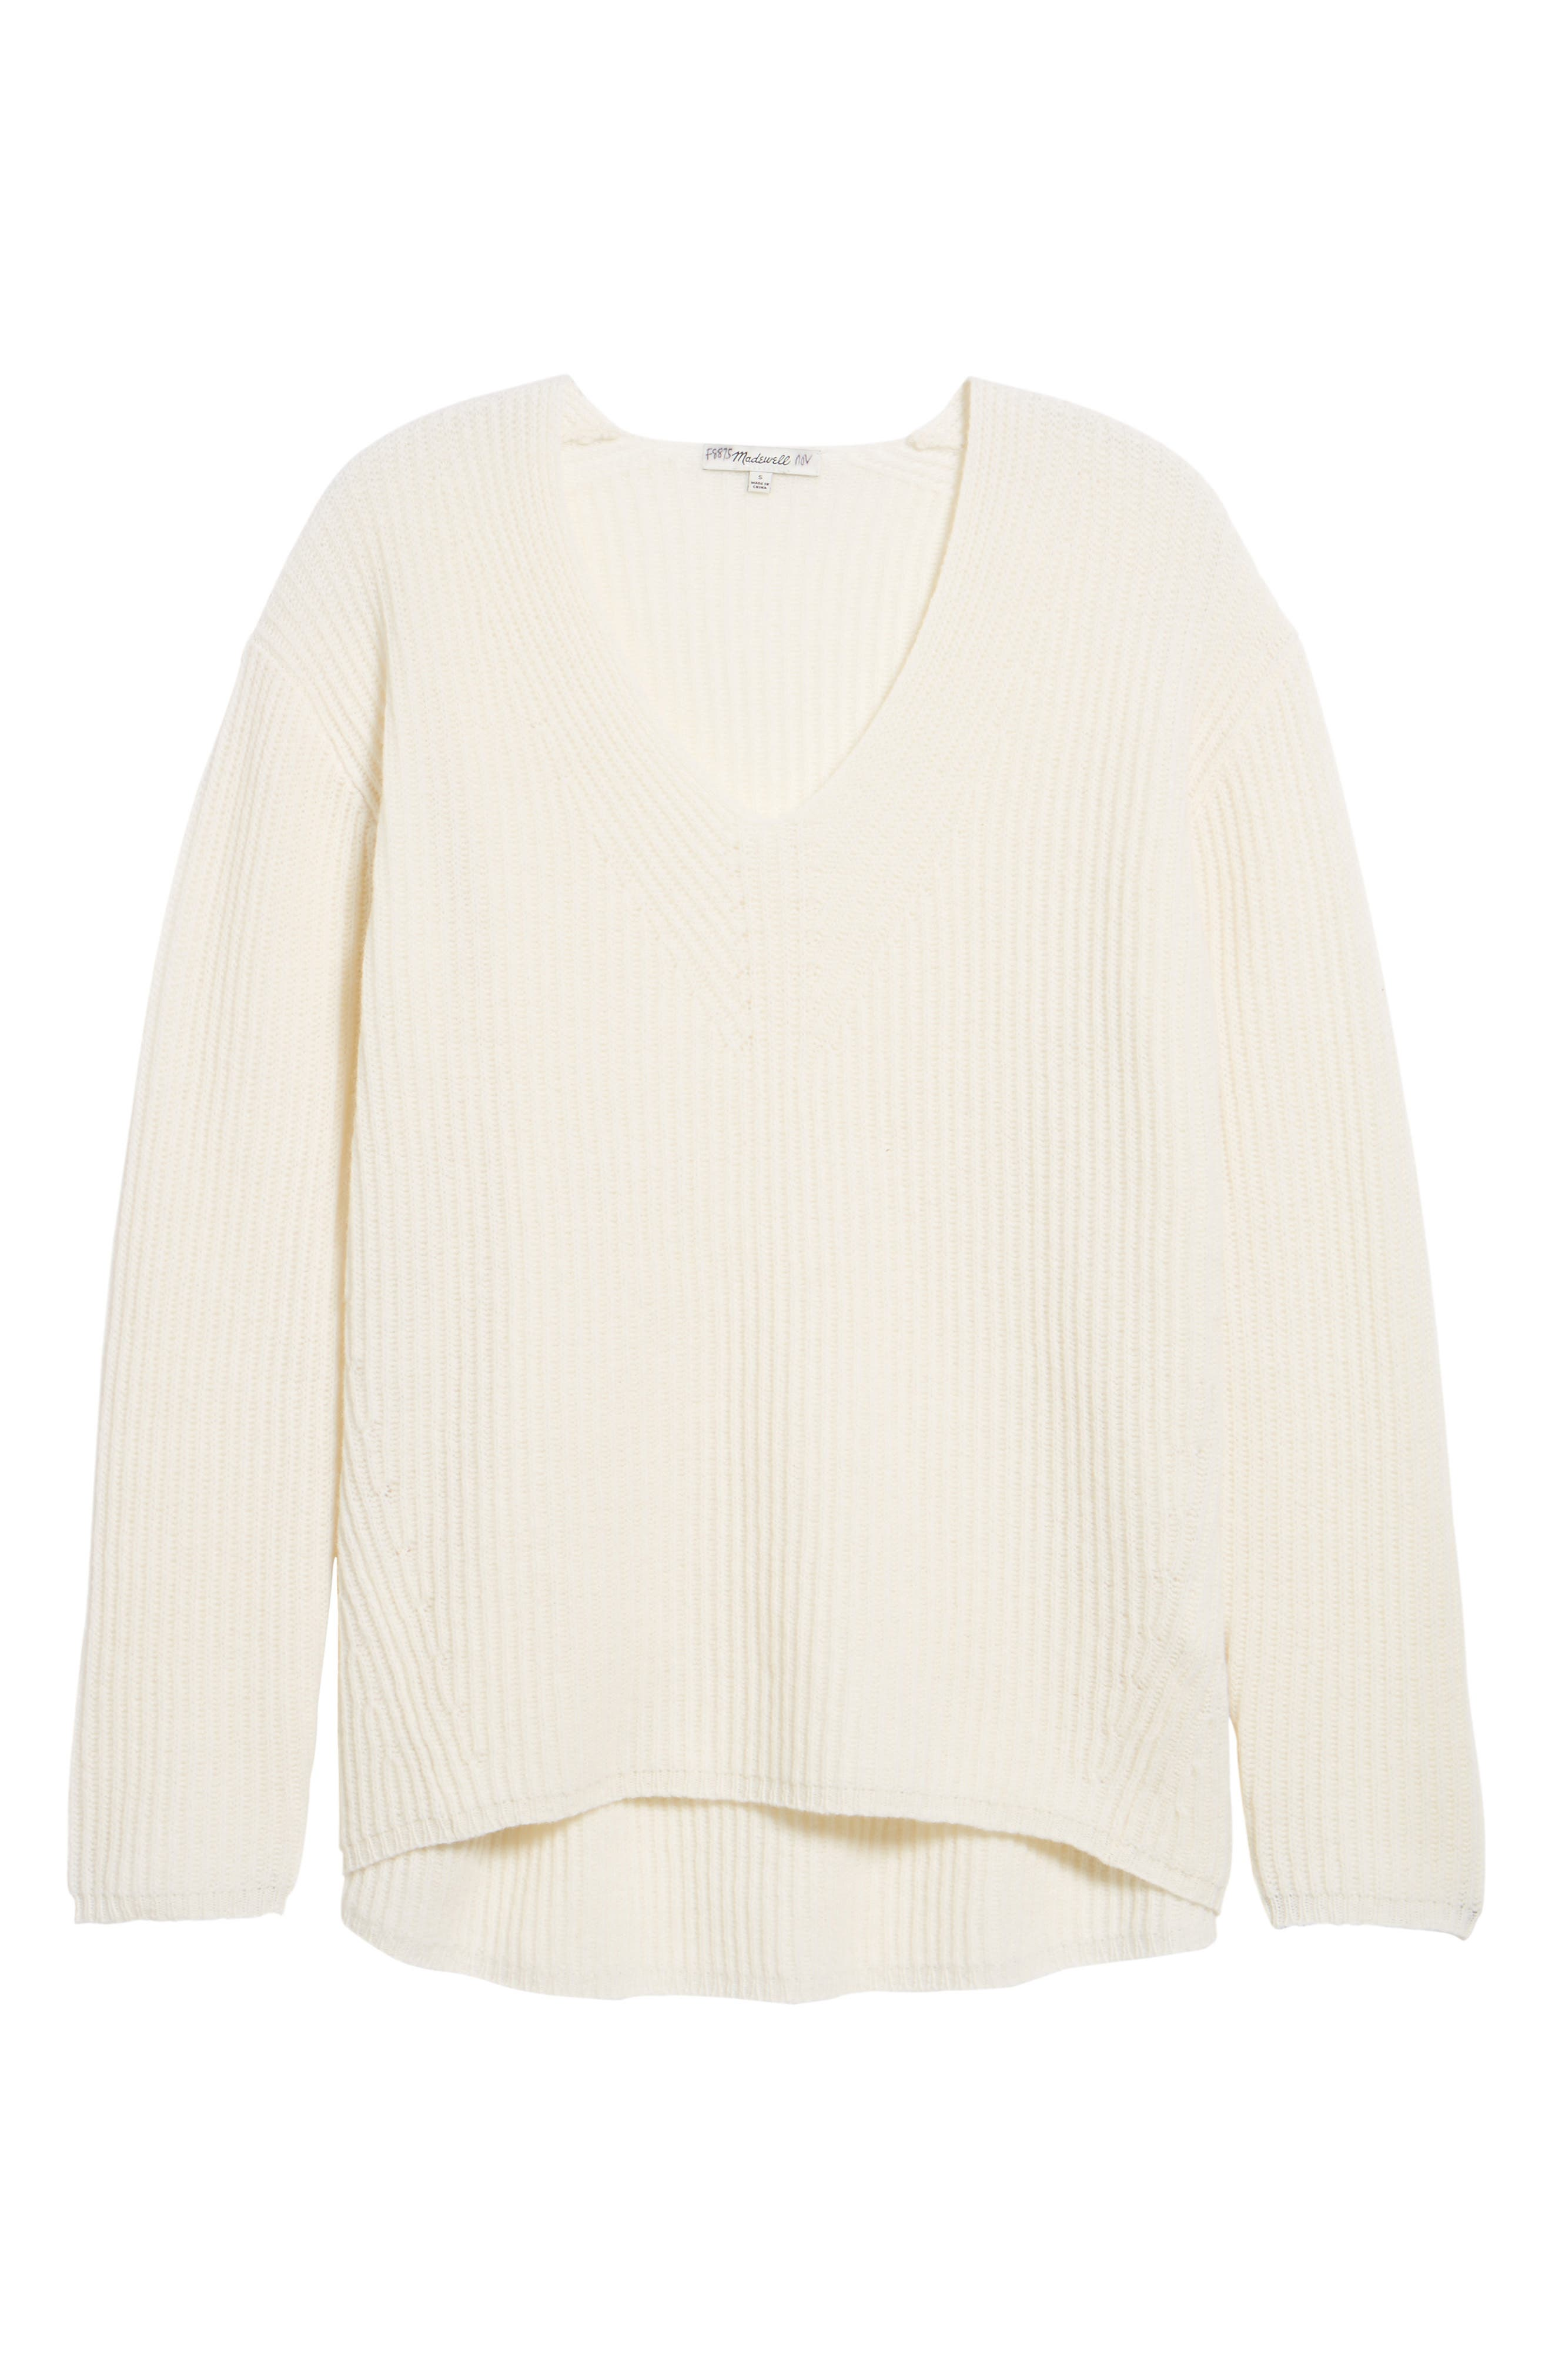 Woodside Pullover Sweater,                         Main,                         color, Antique Cream